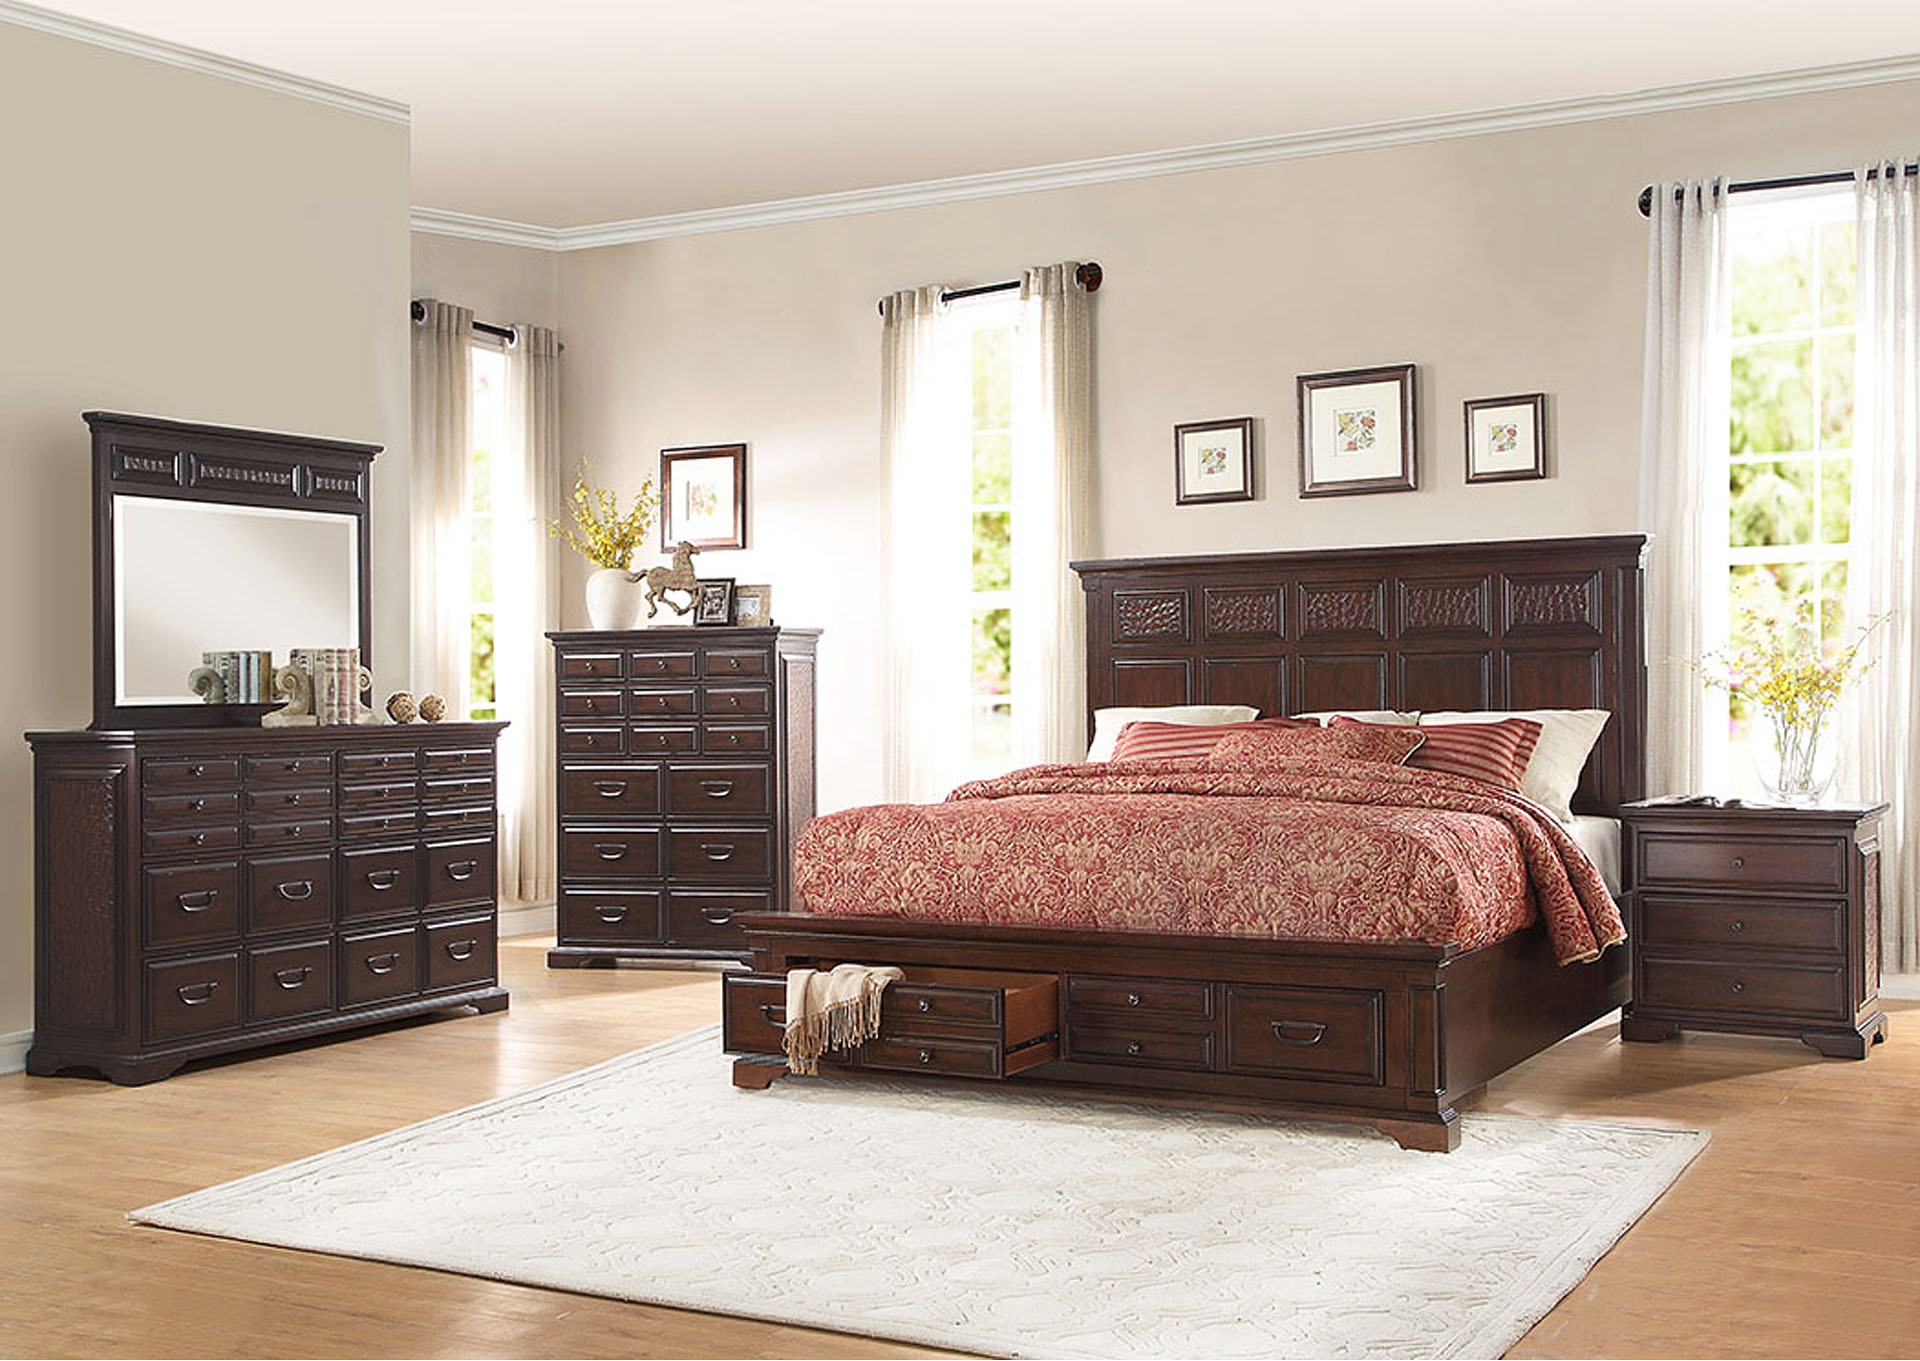 Cranfills Cherry California King Storage Bed ,Homelegance